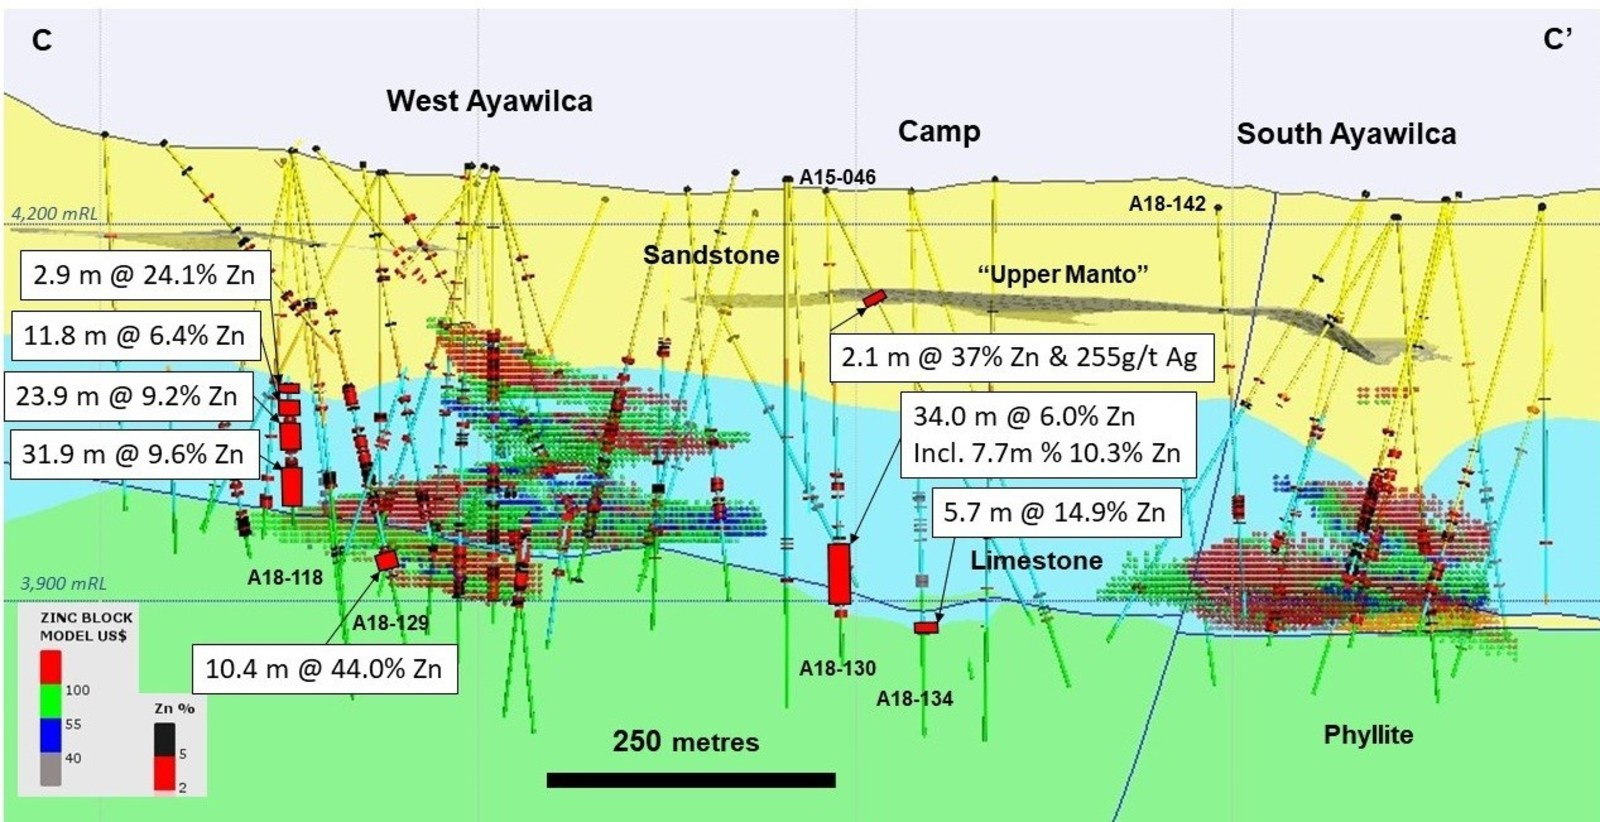 Figure 4.  Cross section of West and South Ayawilca C-C' viewing to the northeast - The Upper Manto in the Goyllar sandstone formation is shown as a 3D projection.  Some recent infill drill holes are not labelled. Existing zinc resources are shown by the red & green hatch